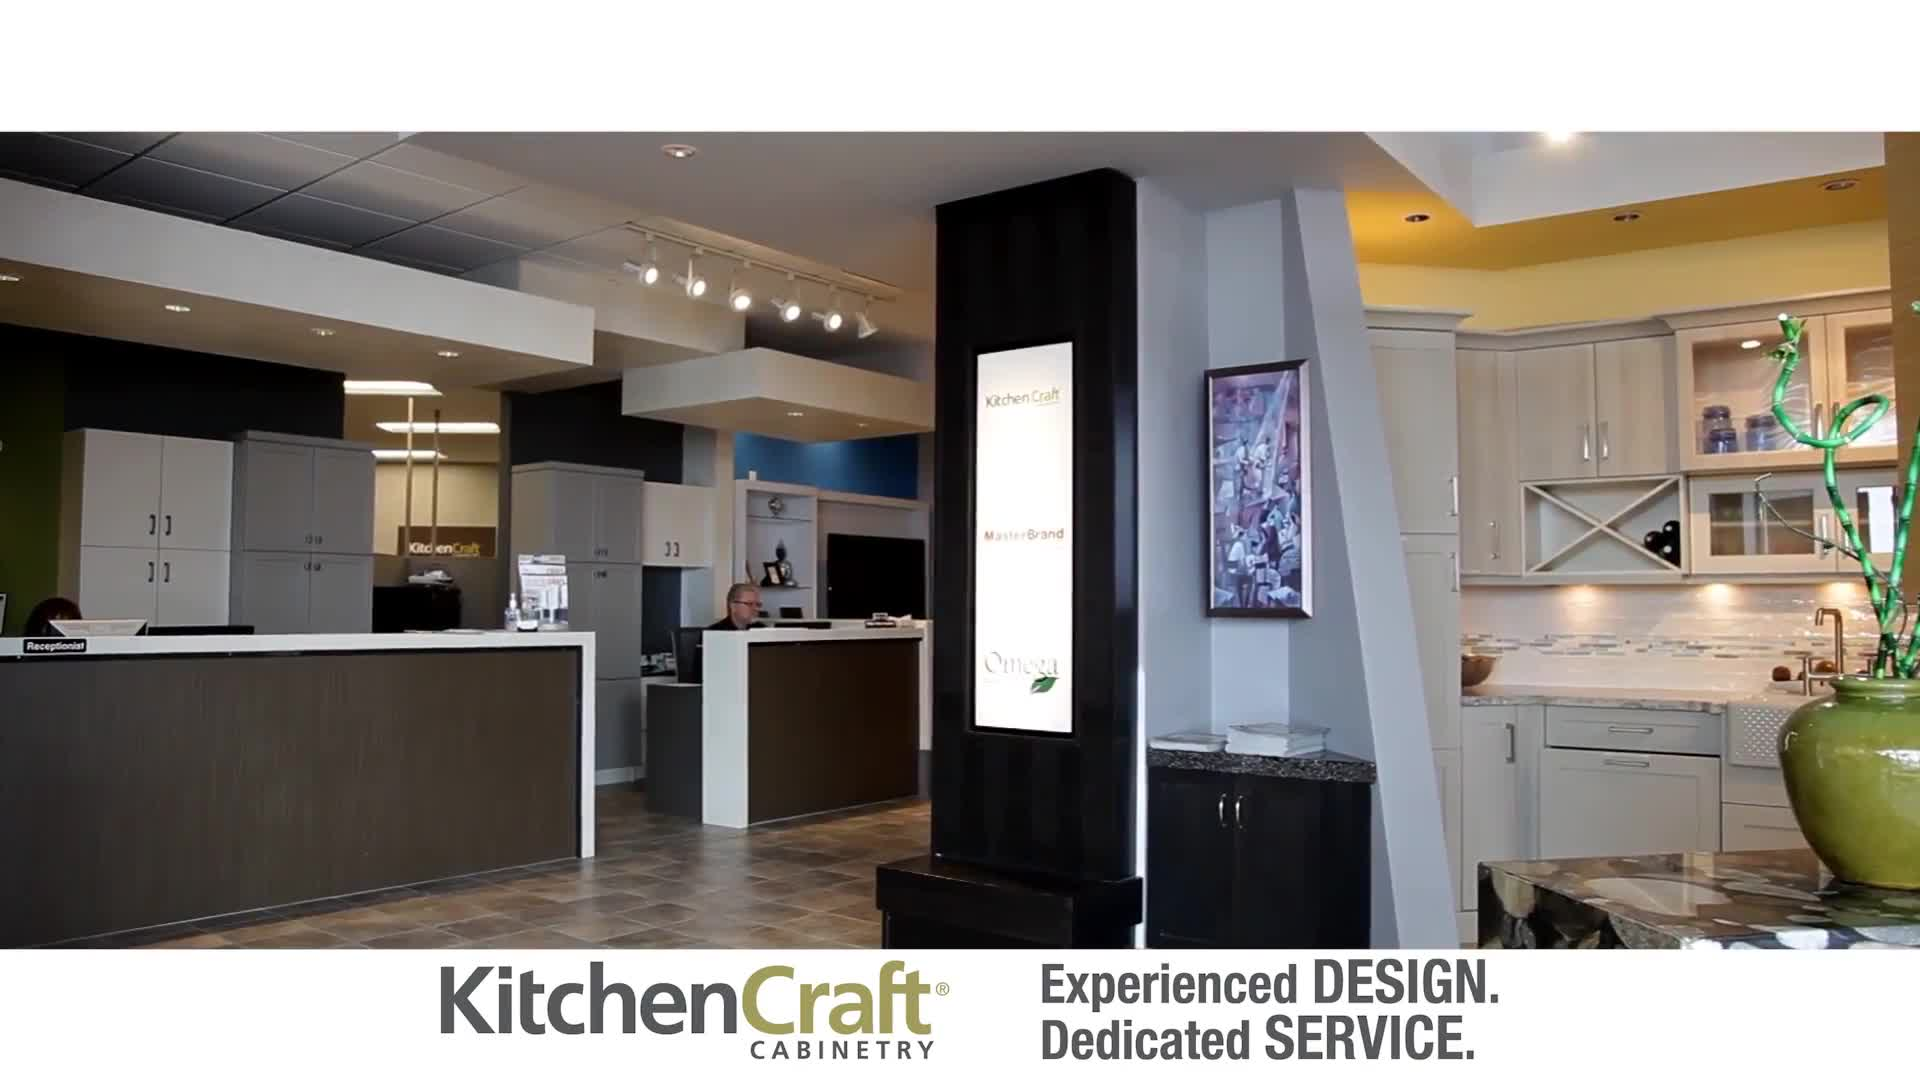 Kitchen Craft Cabinetry - 1-1500 Regent Ave W, Winnipeg, MB on kitchens with espresso cabinets, omega cabinets, kitchen breakfast bar ideas, cabinet maid cabinets, kitchen craft alabaster, kitchen kraft hardware, kitchen kraft toys, kitchen cabinet colors, kitchen island with booth seating, kraftmaid sage cabinets, kountry kraft cabinets, design craft cabinets, kraftmaid maple cabinets,